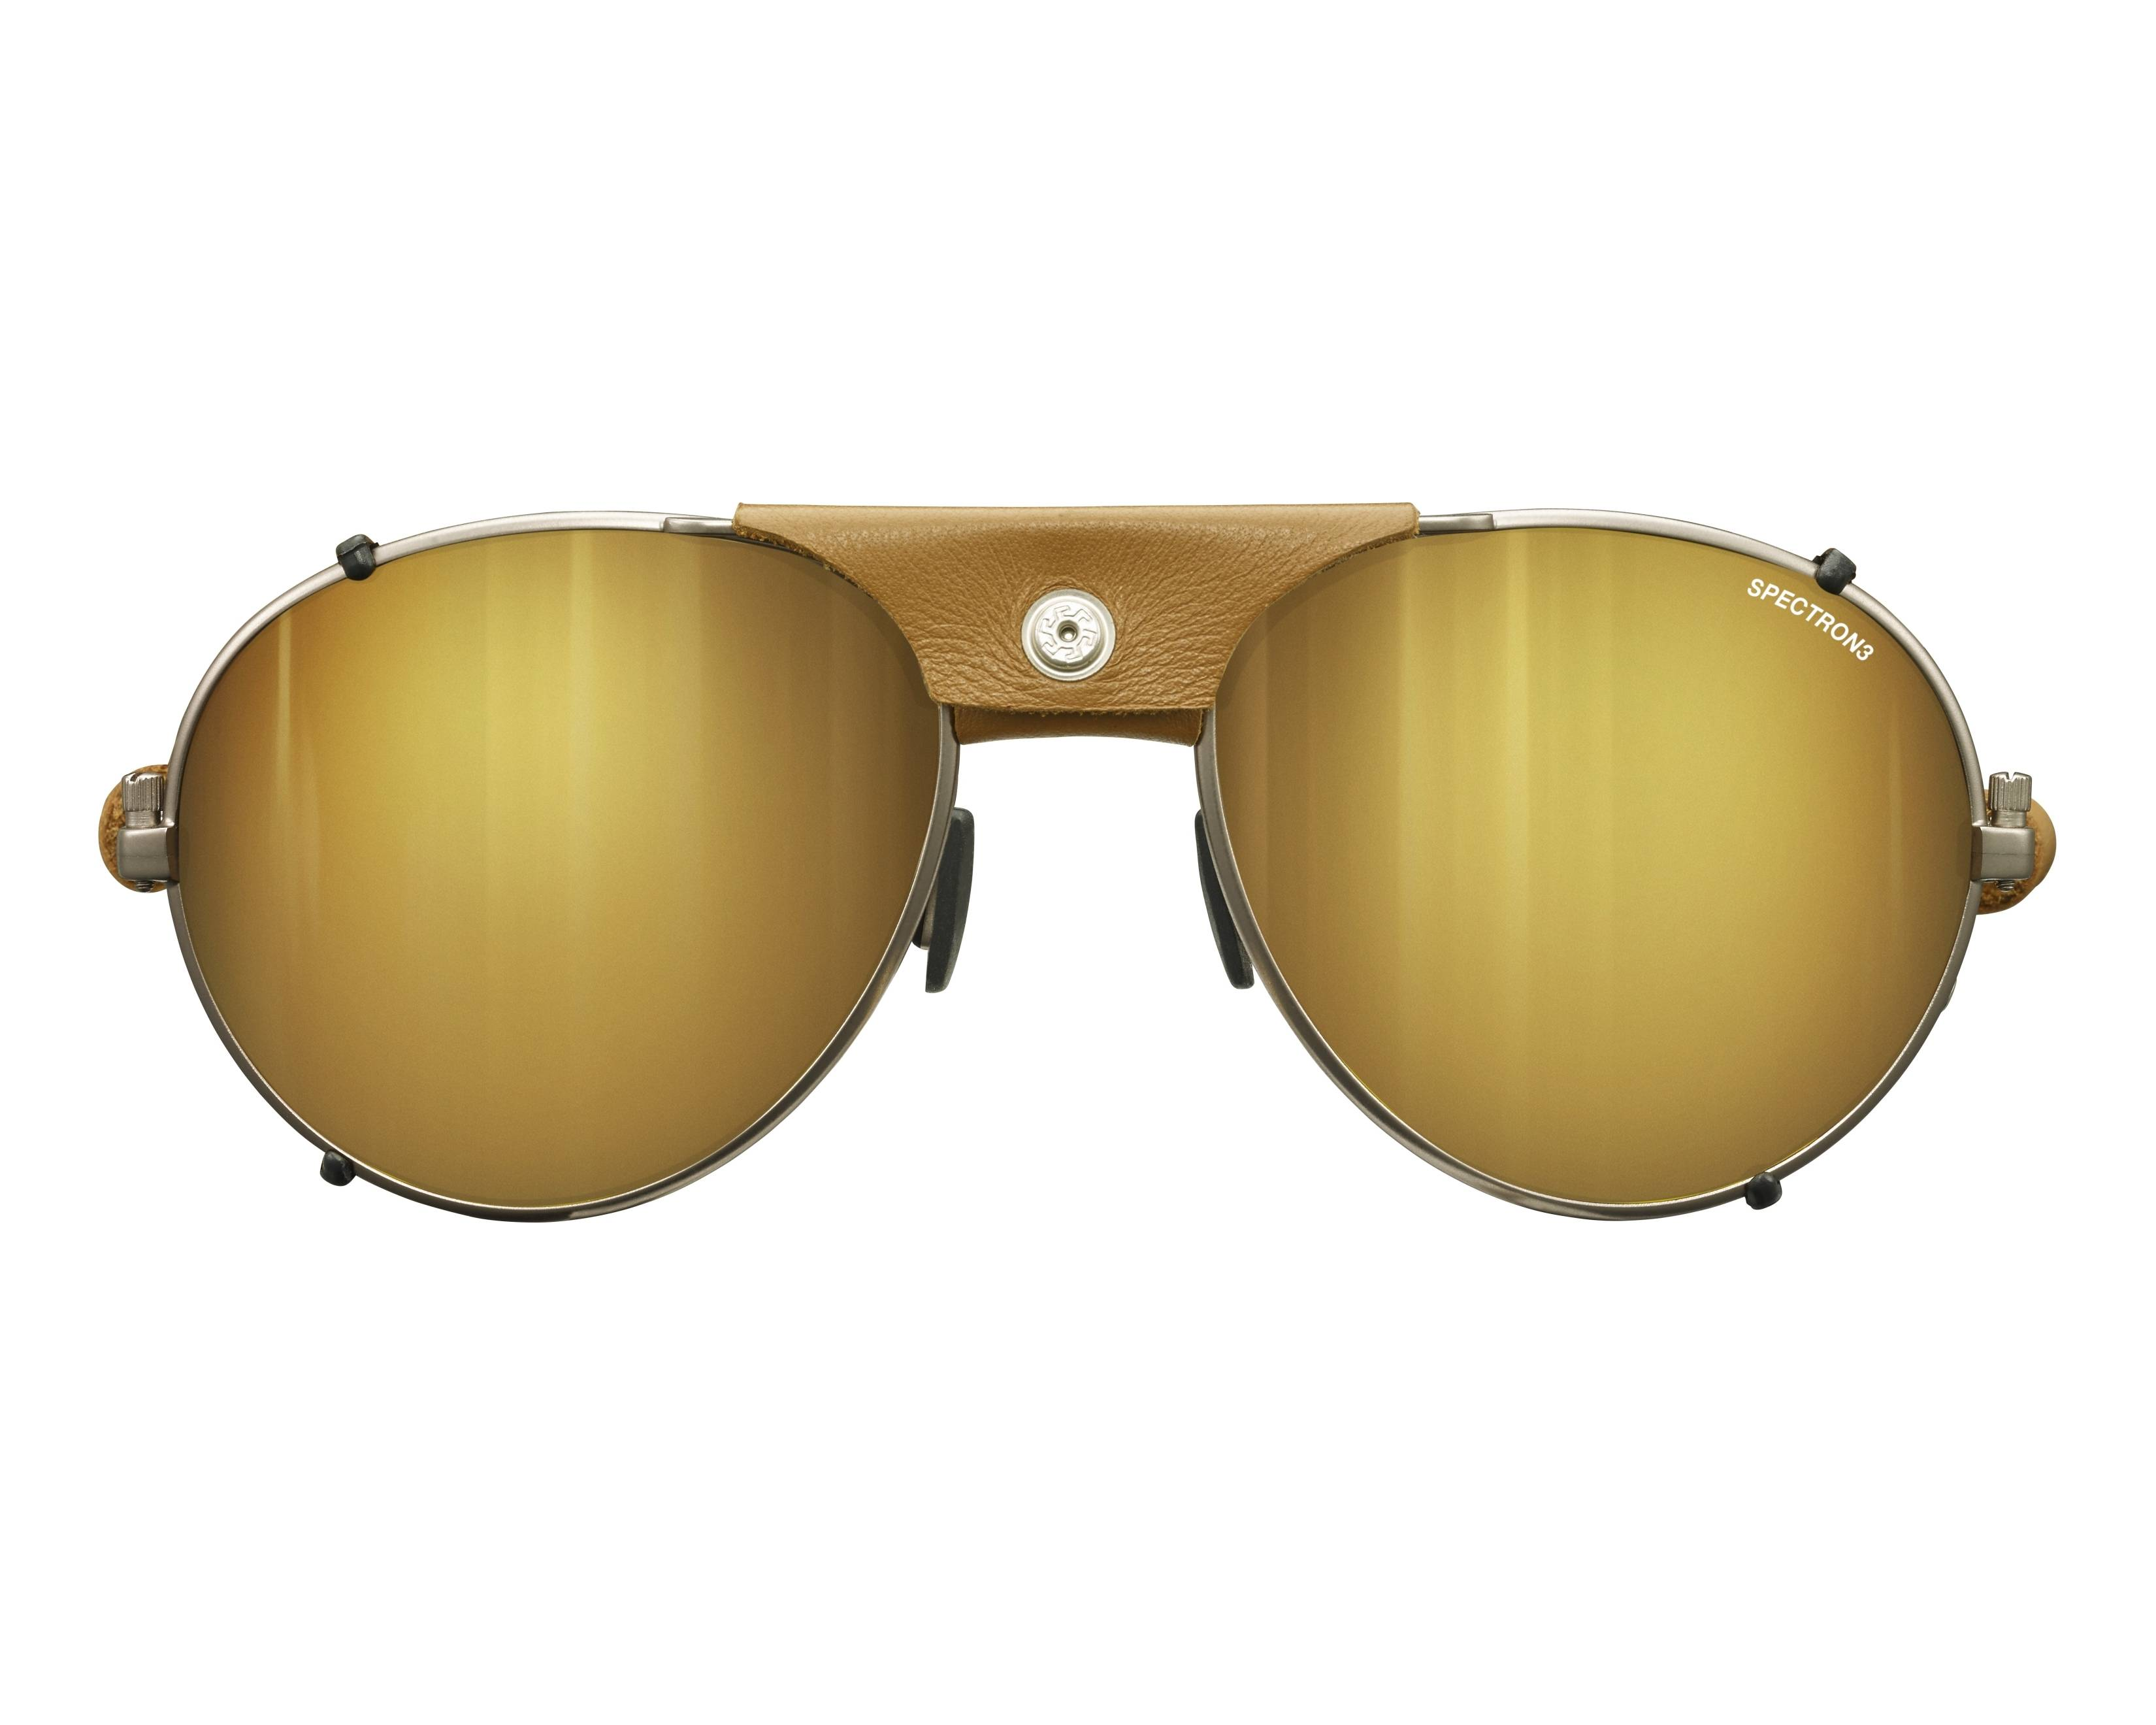 0ebb1e76db Sunglasses Julbo J020 1150 58-19 Gun Brown front view